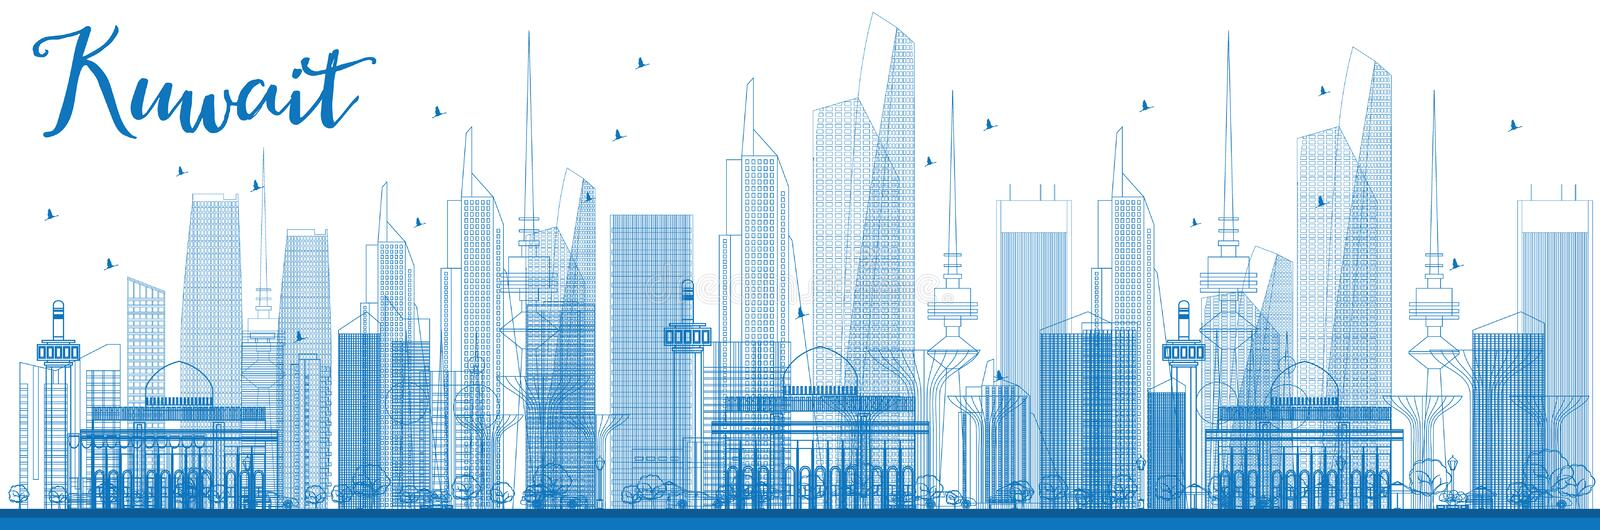 Outline kuwait city skyline with blue buildings stock vector download outline kuwait city skyline with blue buildings stock vector illustration of city malvernweather Gallery